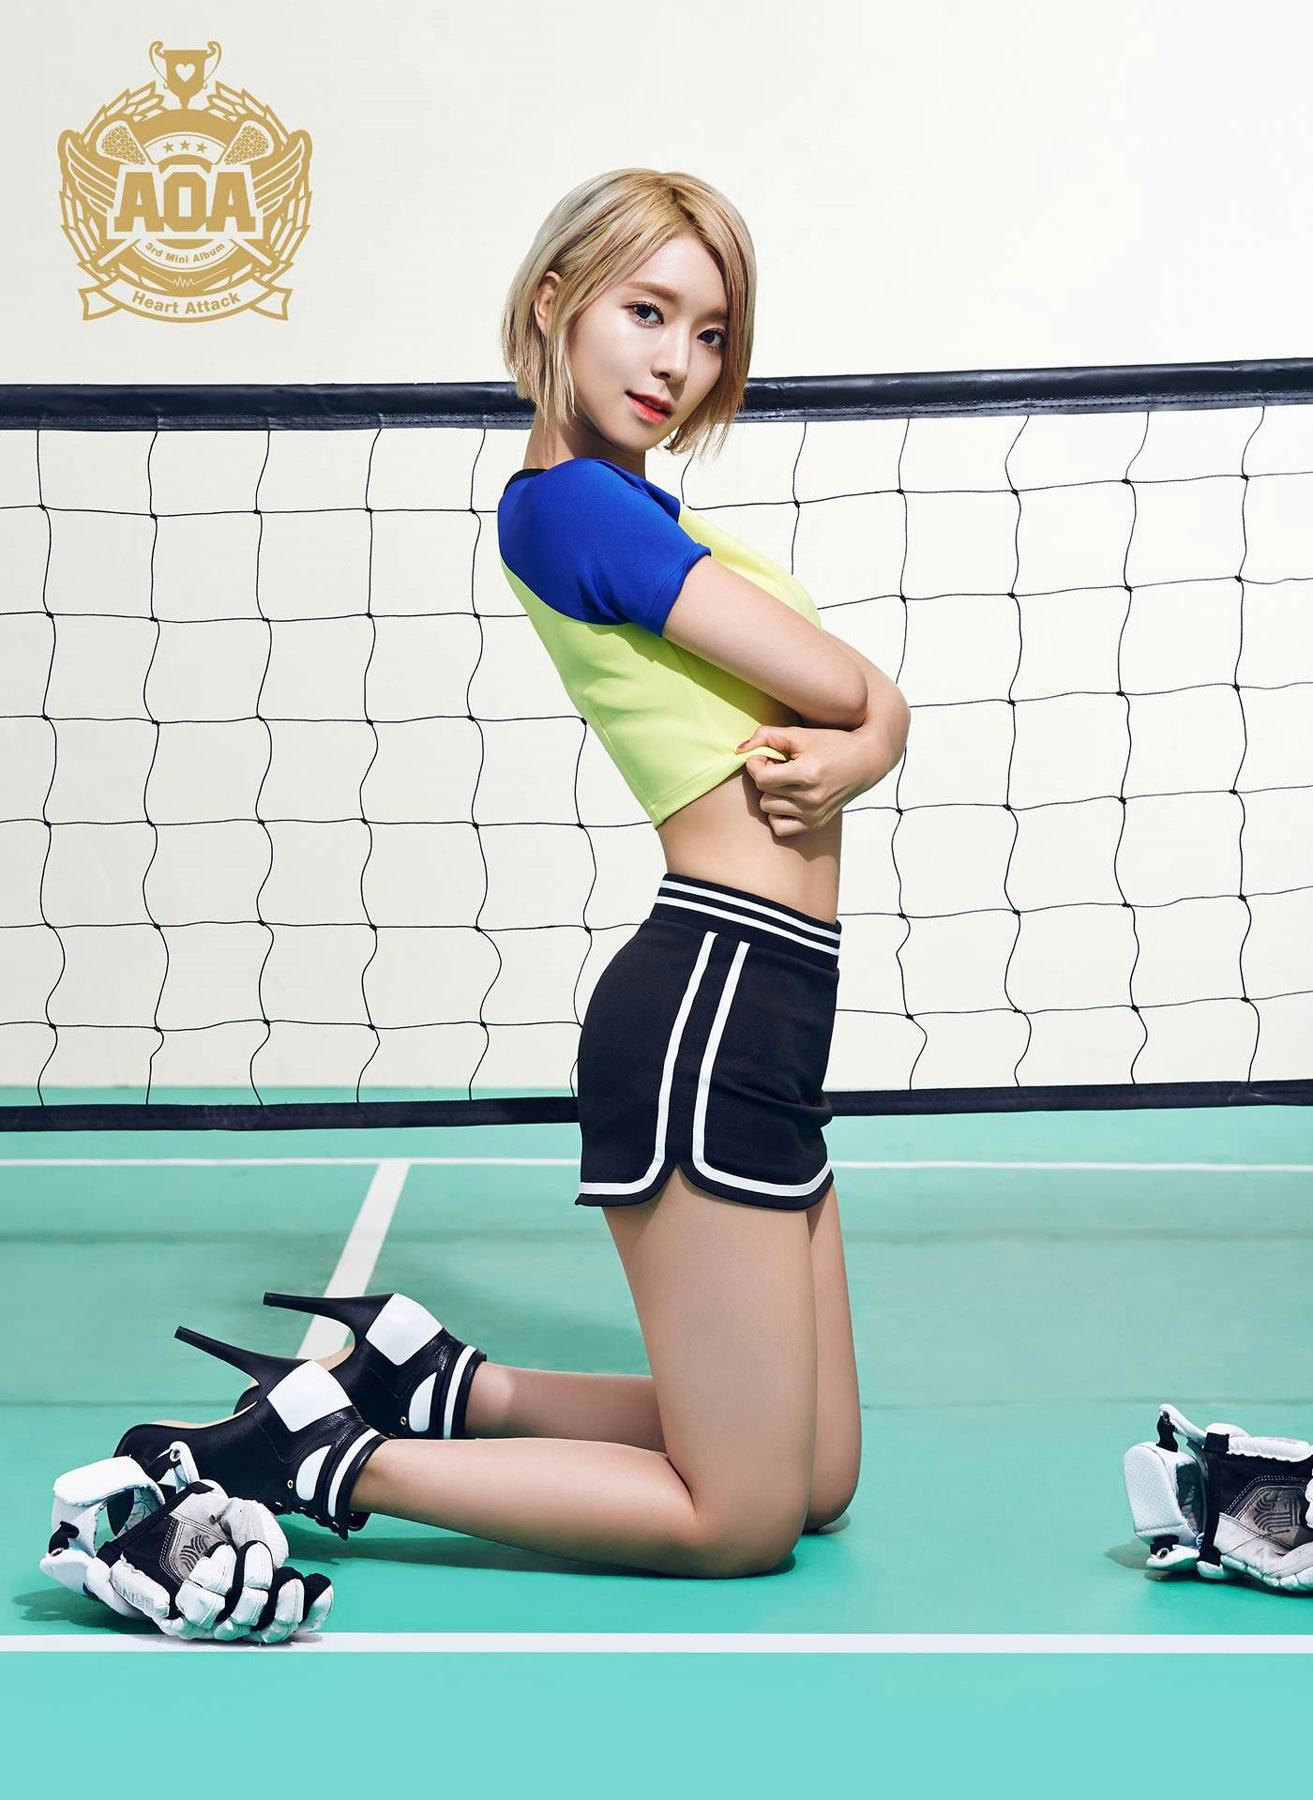 AOA Choa Heart Attack Korean mini album